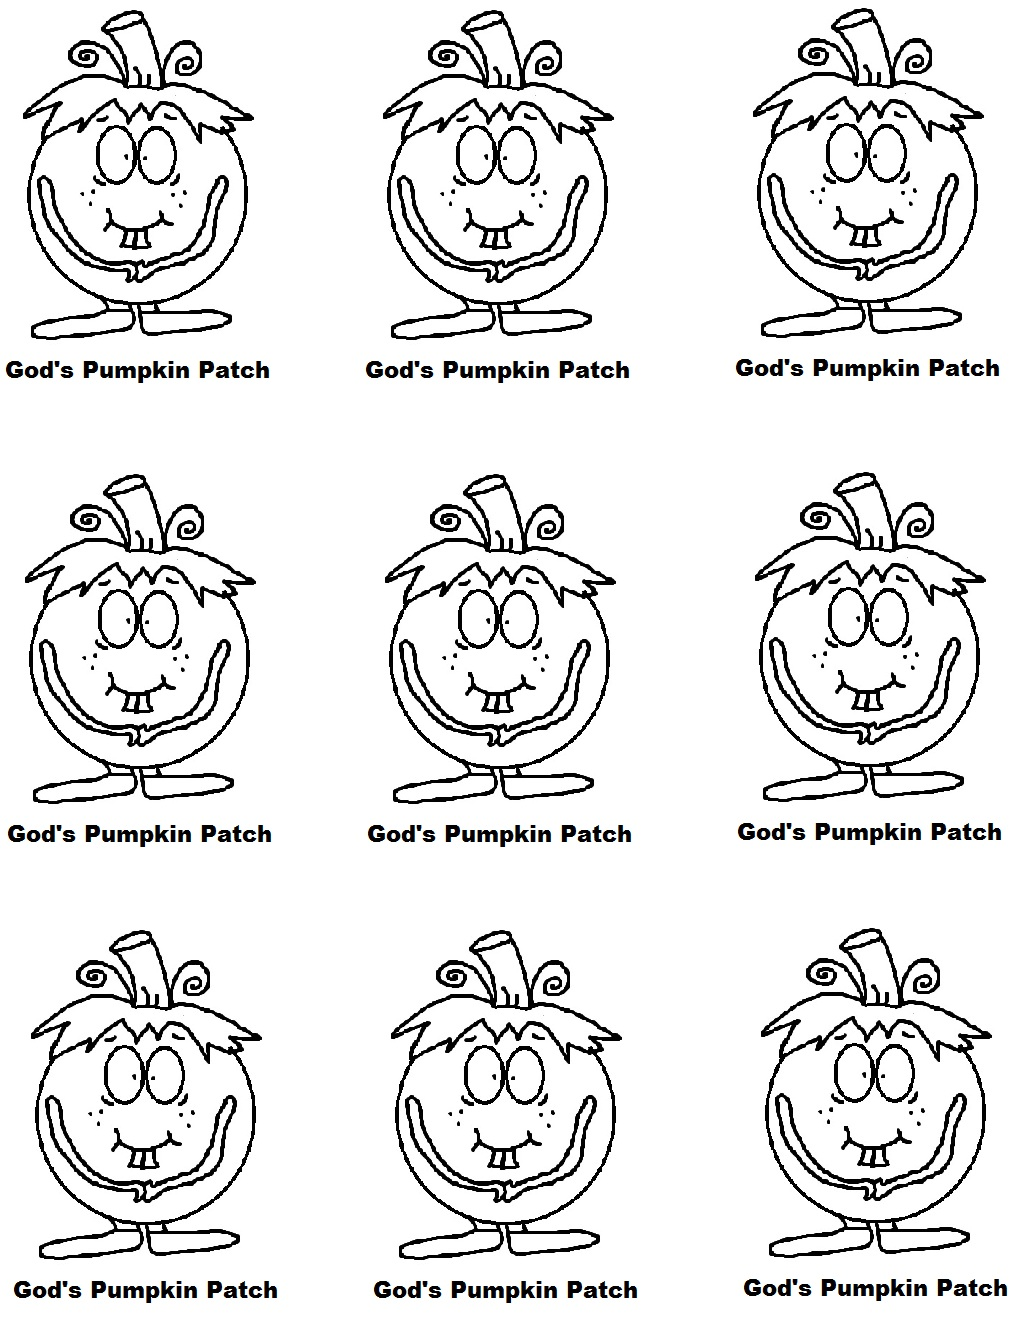 Pumpkin Sunday School Lesson Preschool Kids Fall Lesson Plans - Pumpkin-prayer-coloring-page